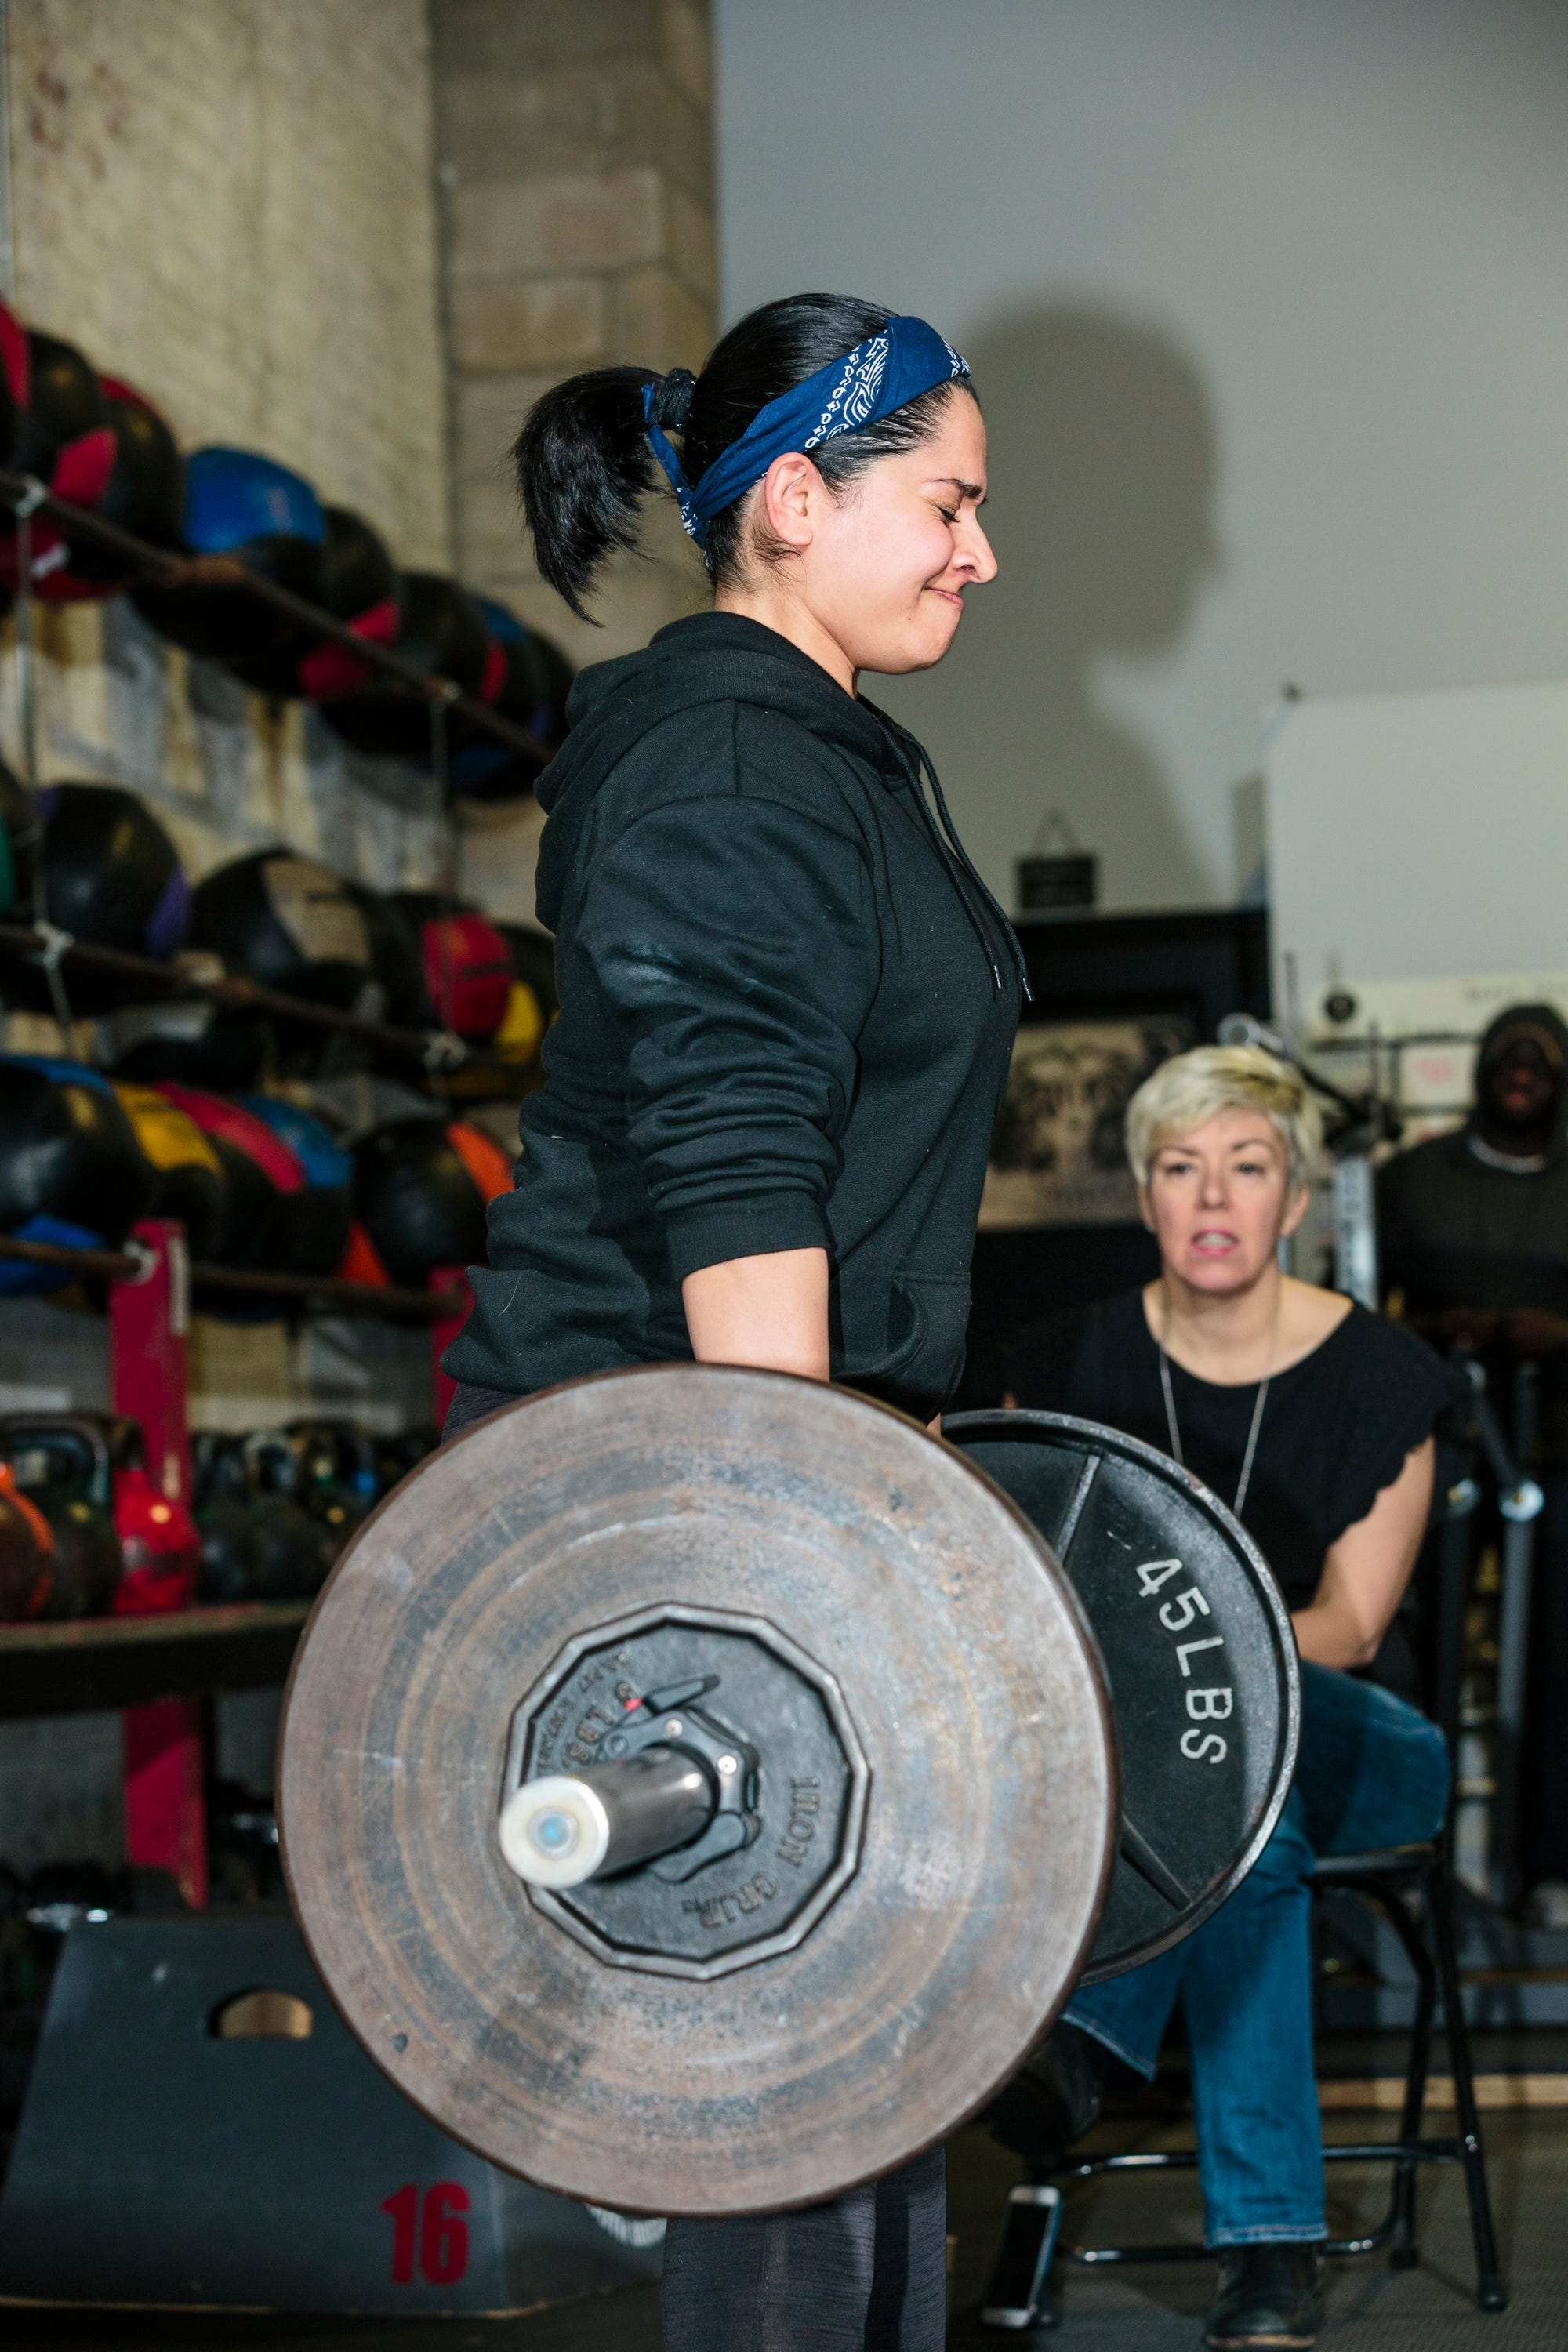 Women Powerlifting Competition Crossfit Photos 2017